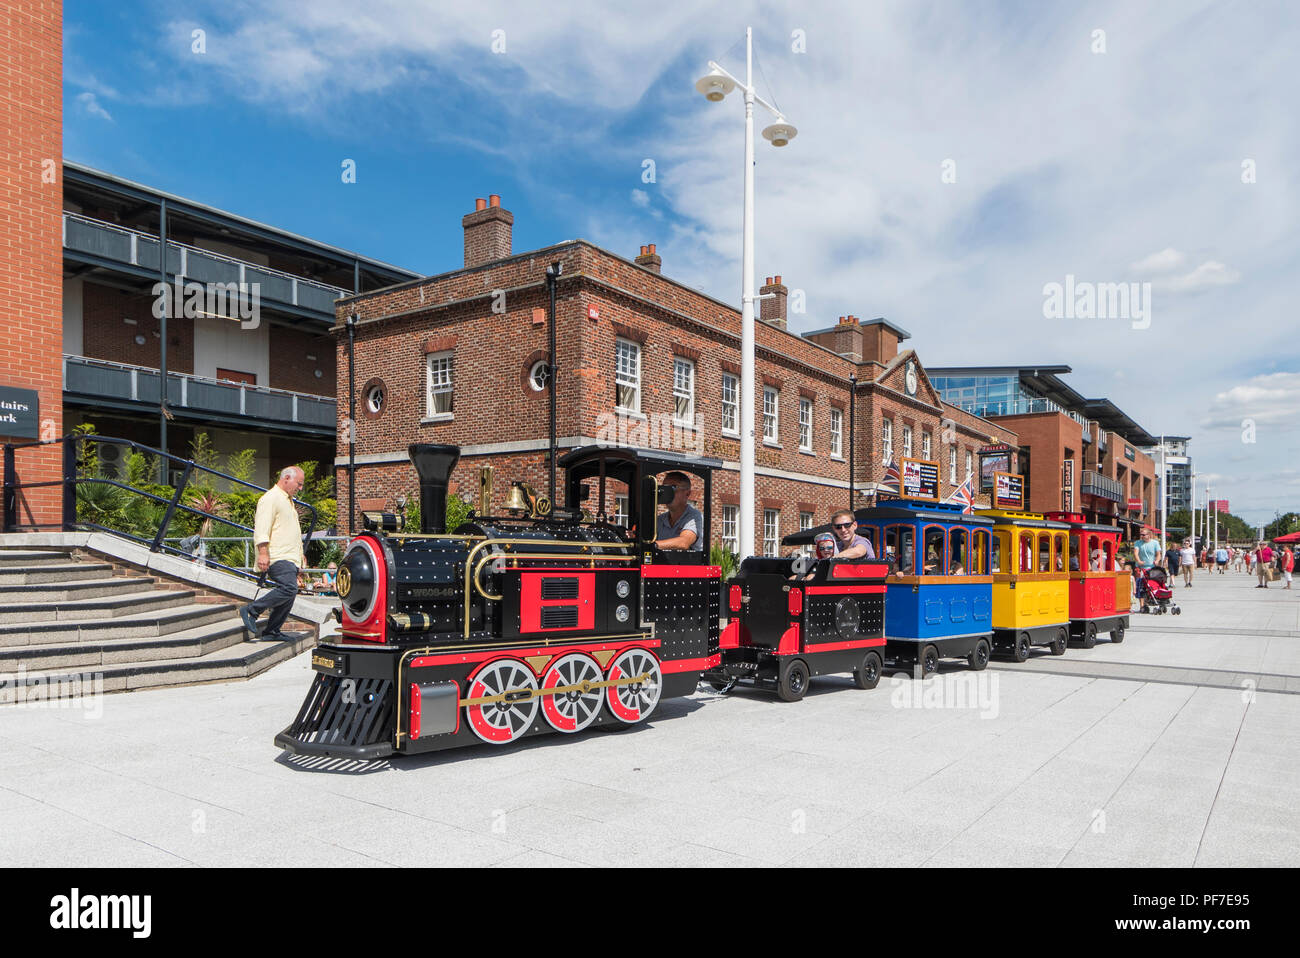 The Mini Loco Express road train in Gunwharf Quays, Portsmouth, Hampshire, England, UK. - Stock Image